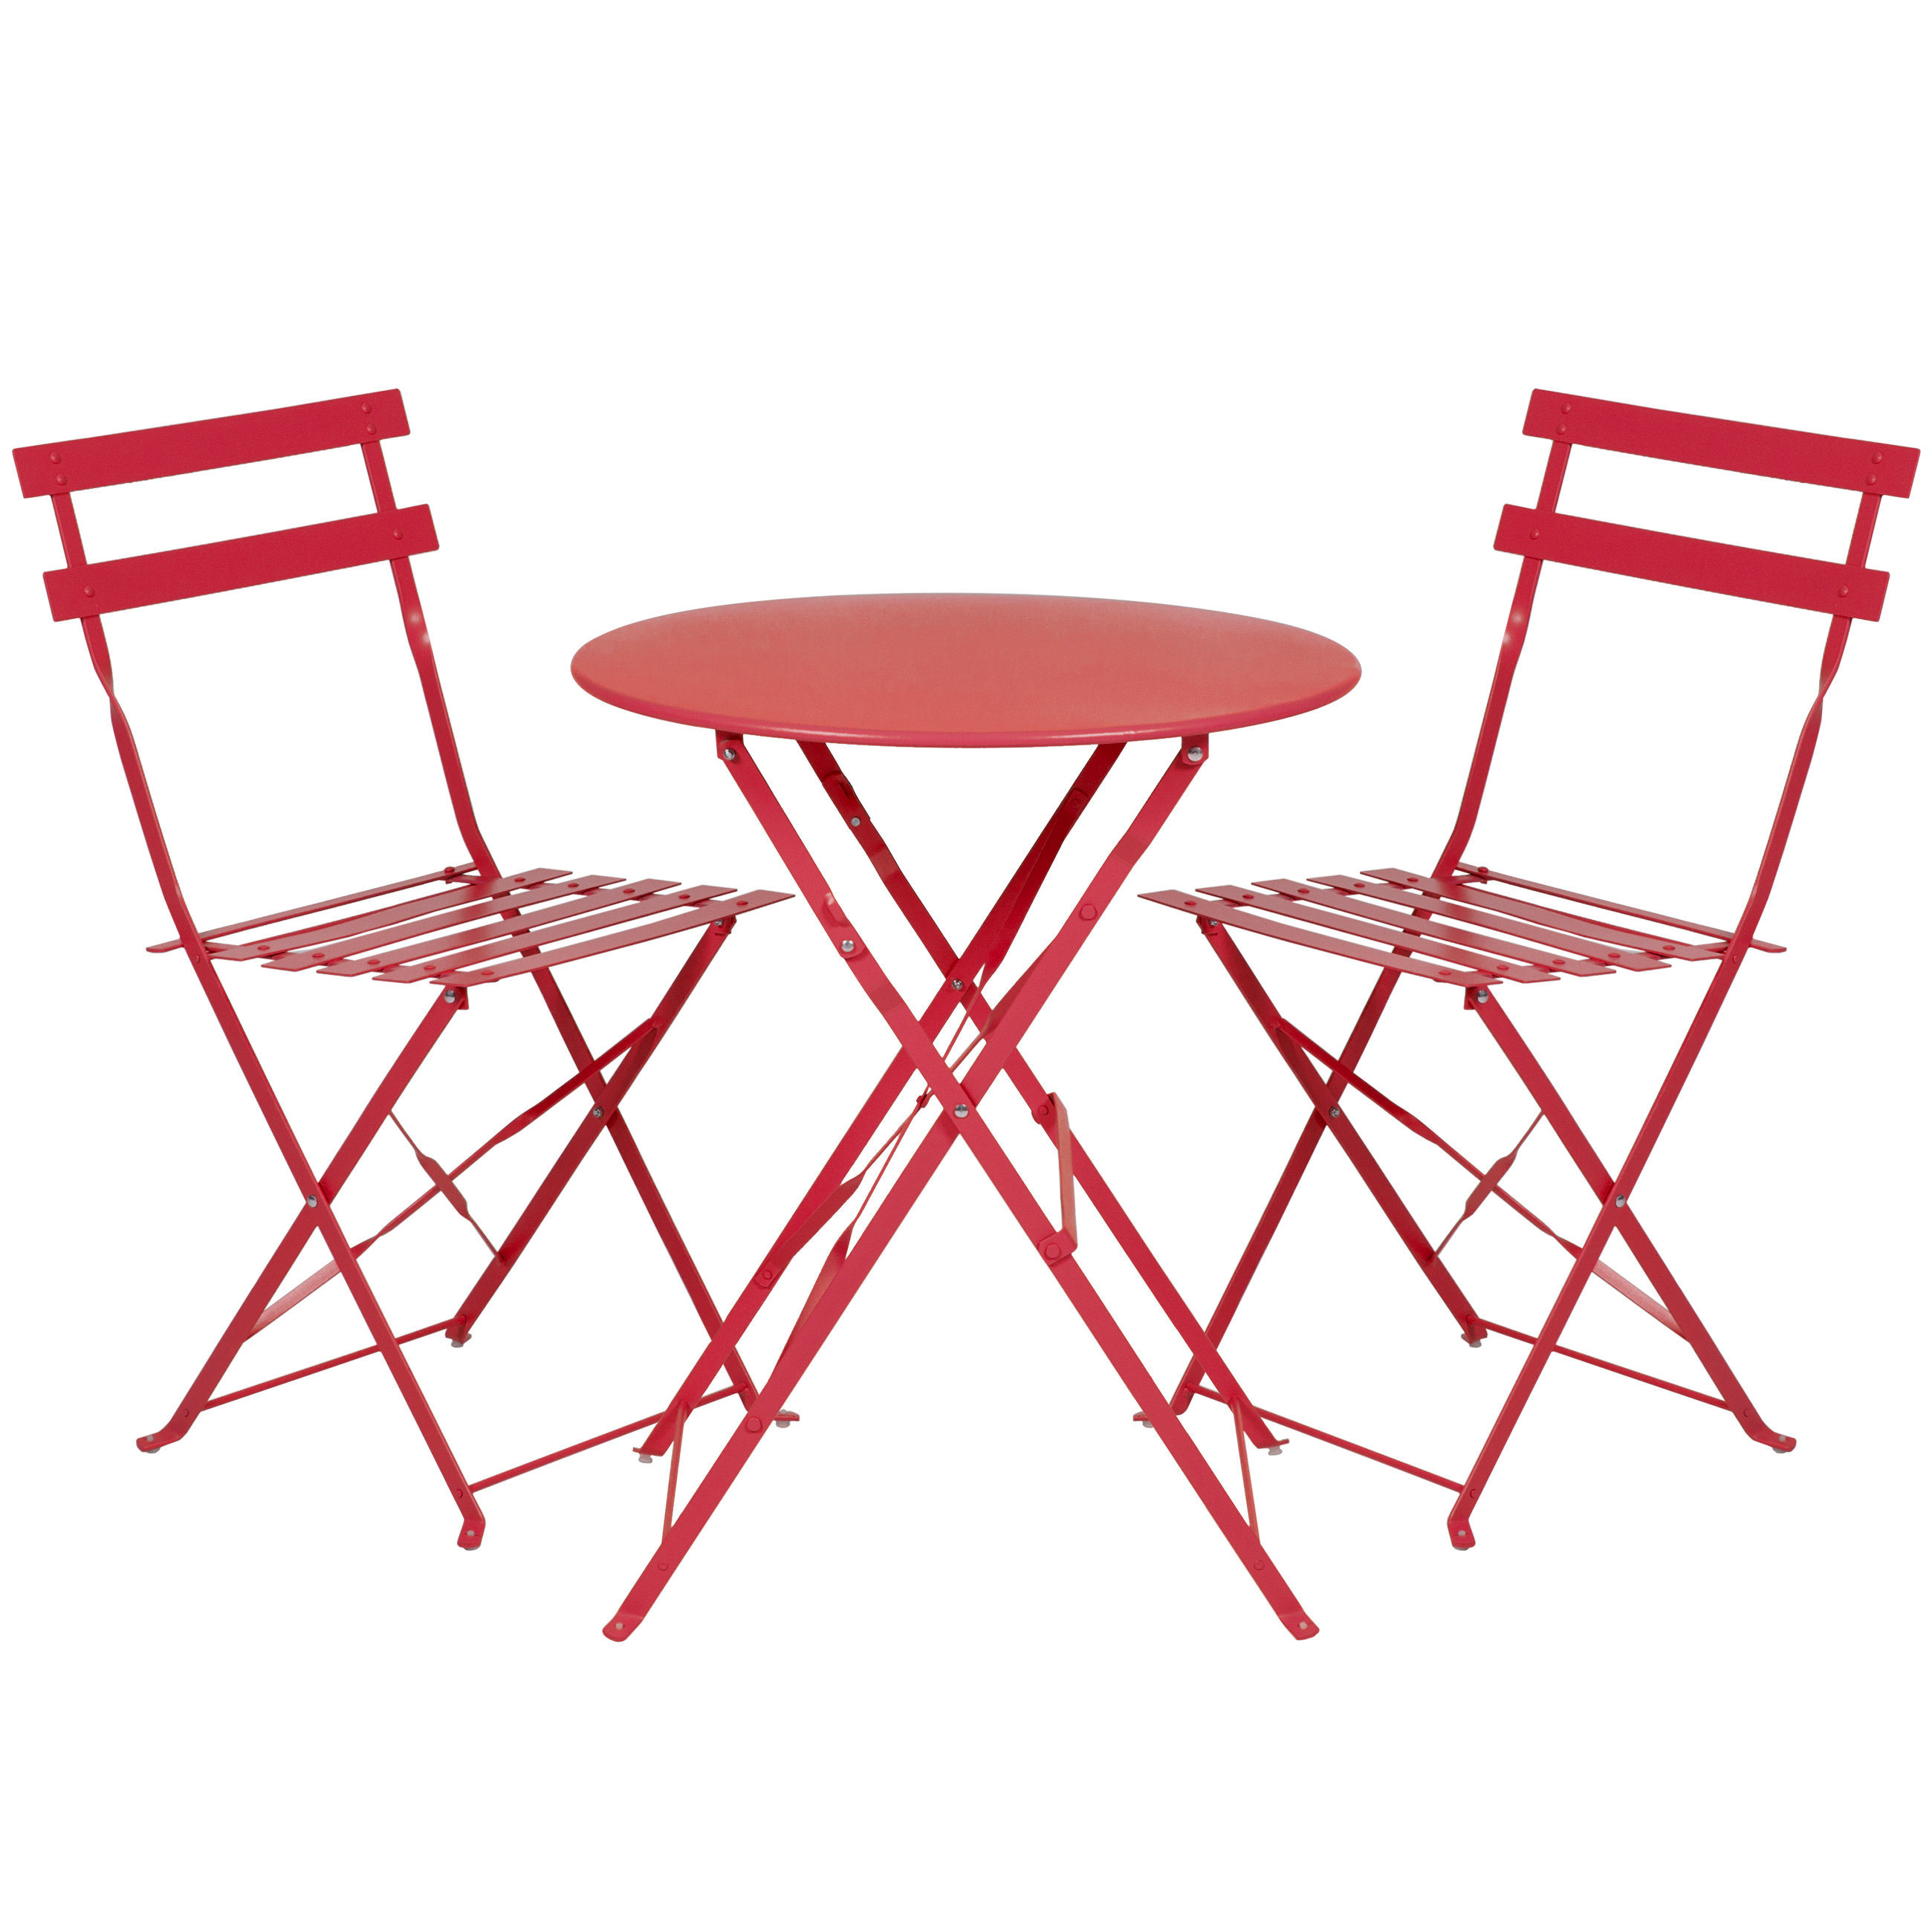 Best Choice Products 3-Piece Portable Folding Metal Bistro Set w  Table and 2 Chairs Red by Best Choice Products